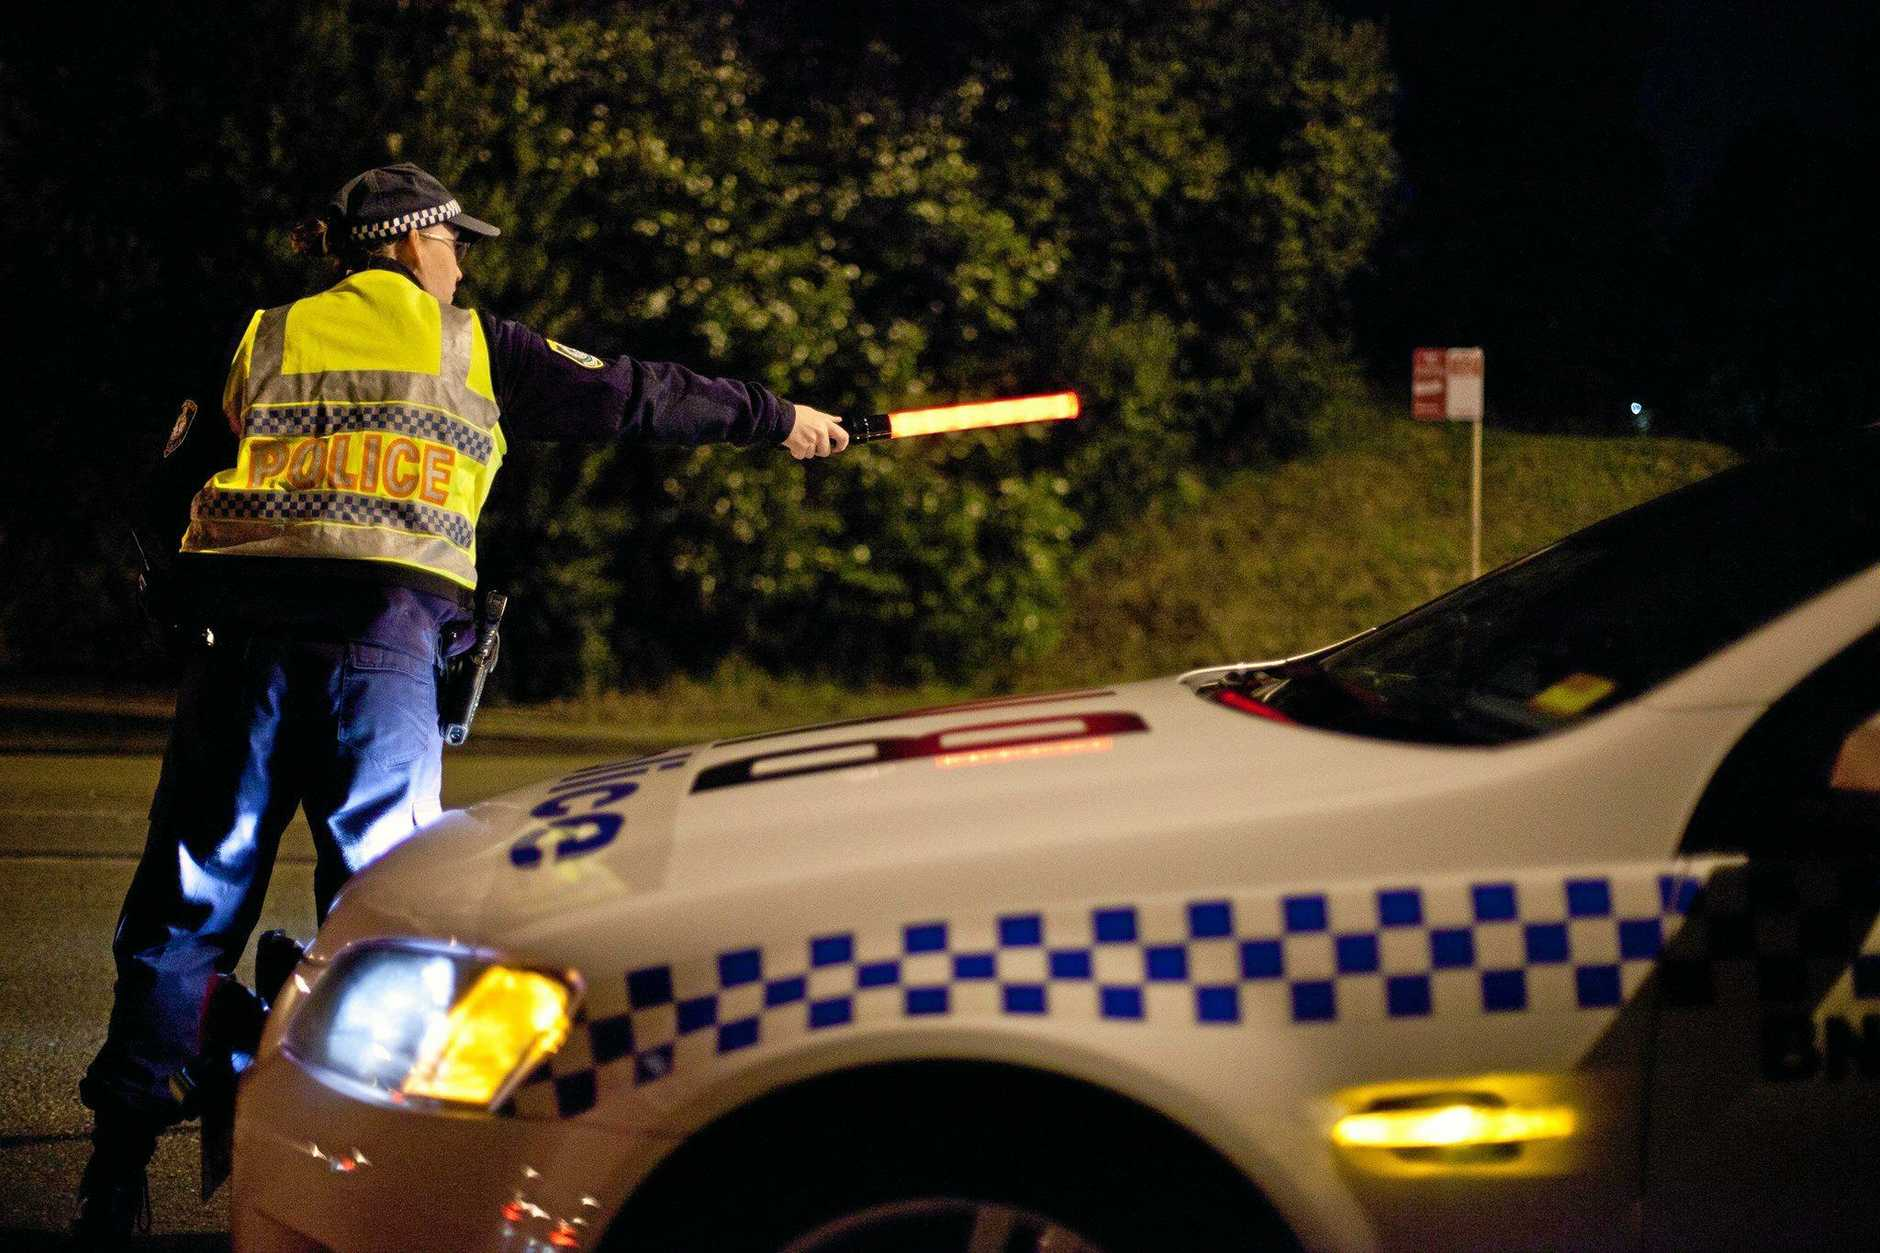 DUMB DRIVERS: Police are finding that poor driving behaviour such as speeding often indicate other criminal offences behind the wheel.